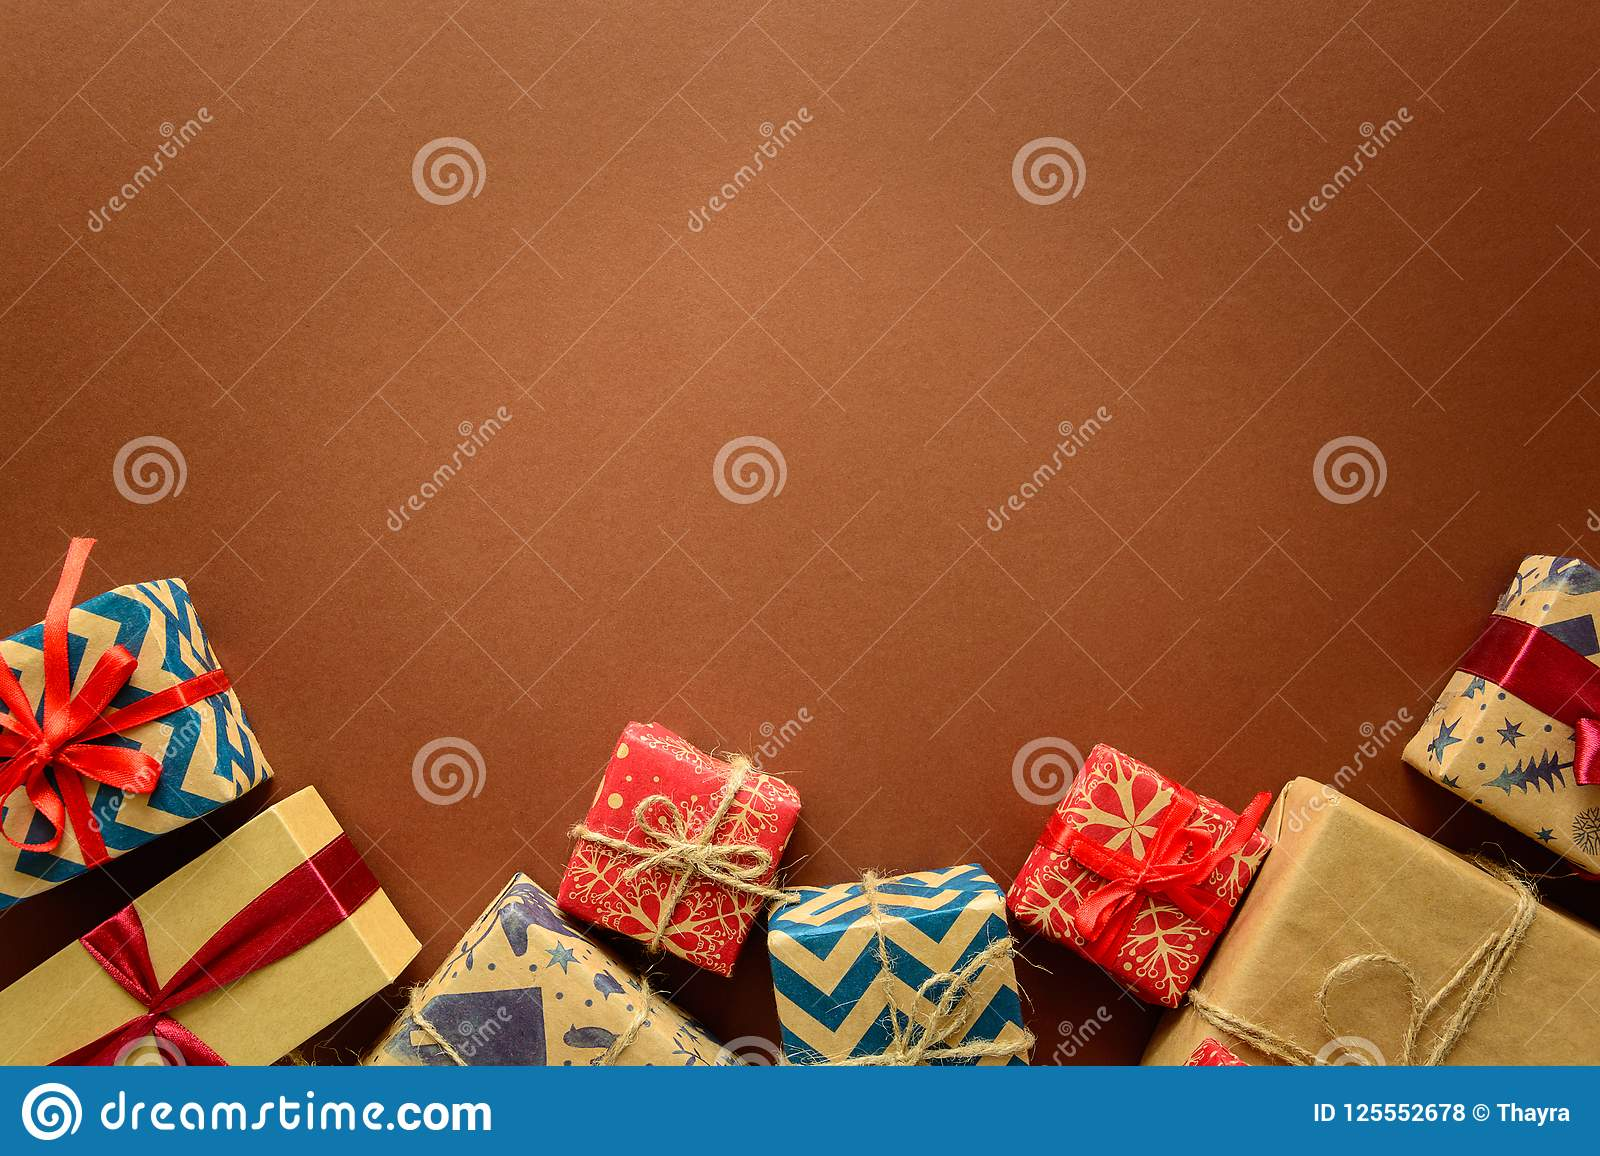 Top view on Christmas gifts wrapped in gift paper decorated with ribbon on brown paper background.